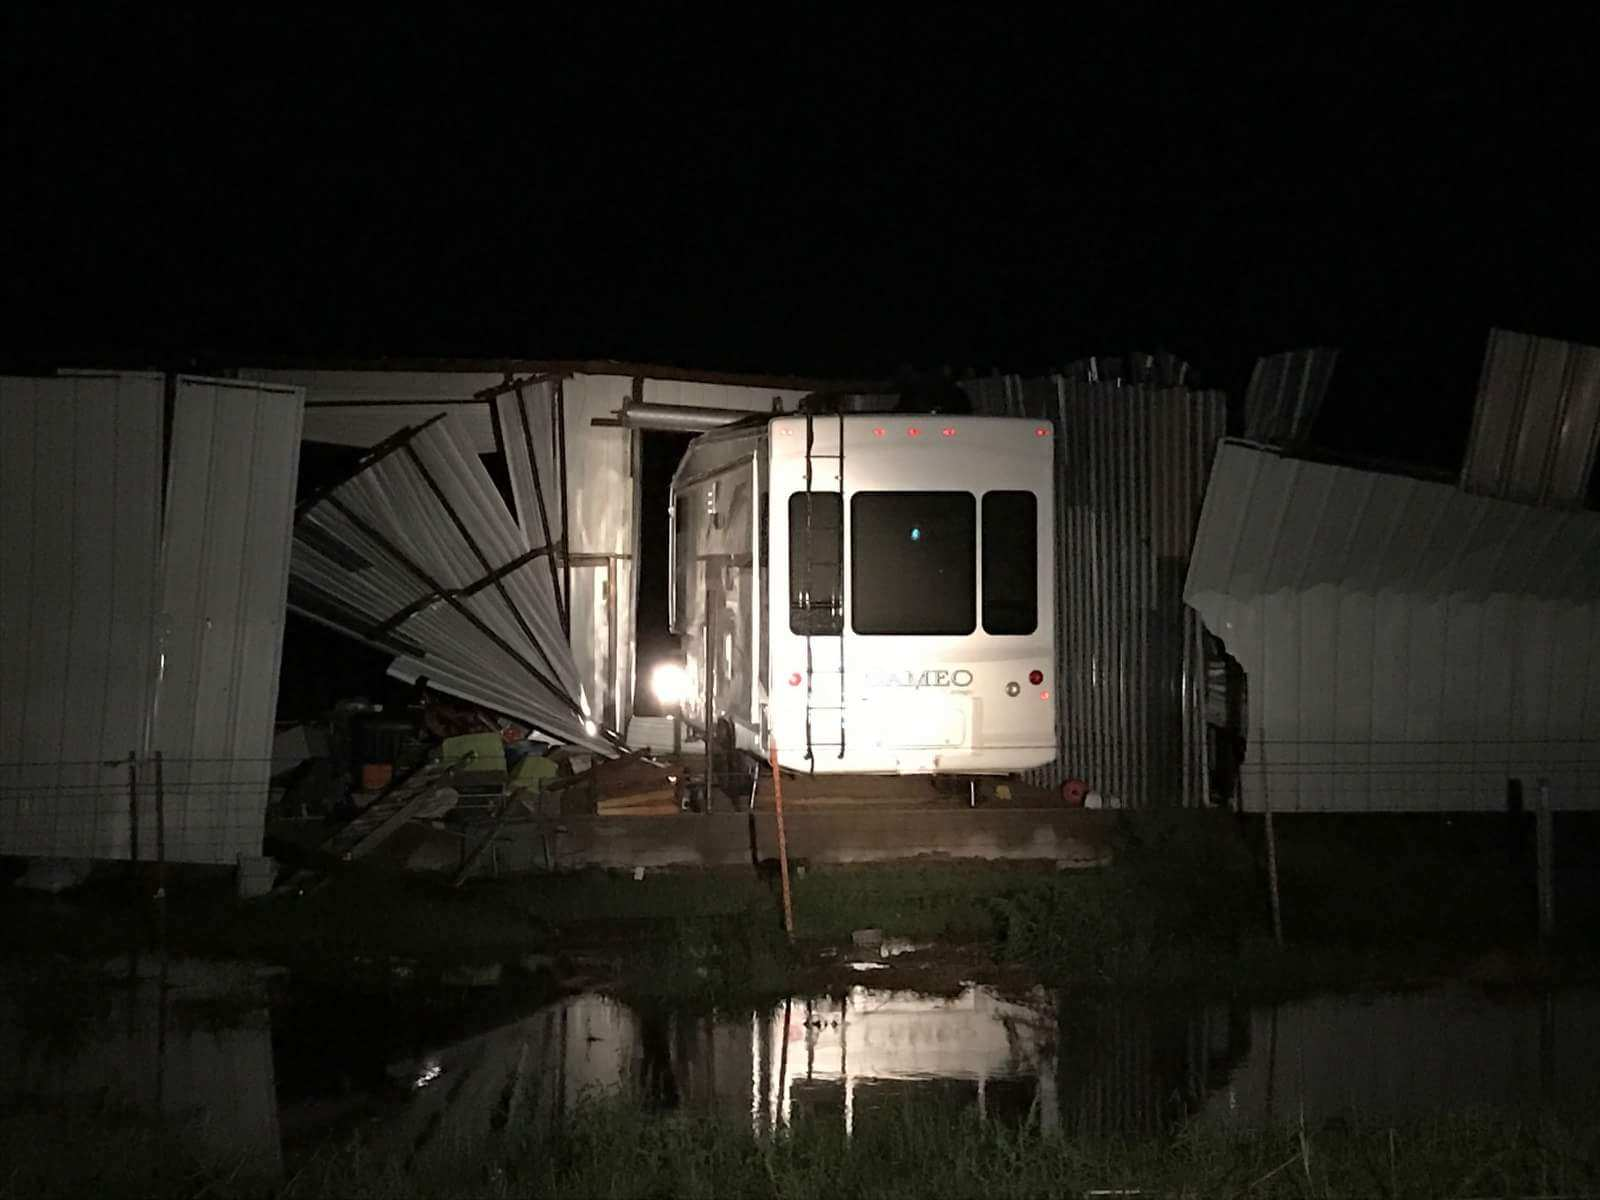 Thursday night storms with high winds cause major damage at an RV storage facility in Portales. (Photo: Roosevelt County Electric Co-op)